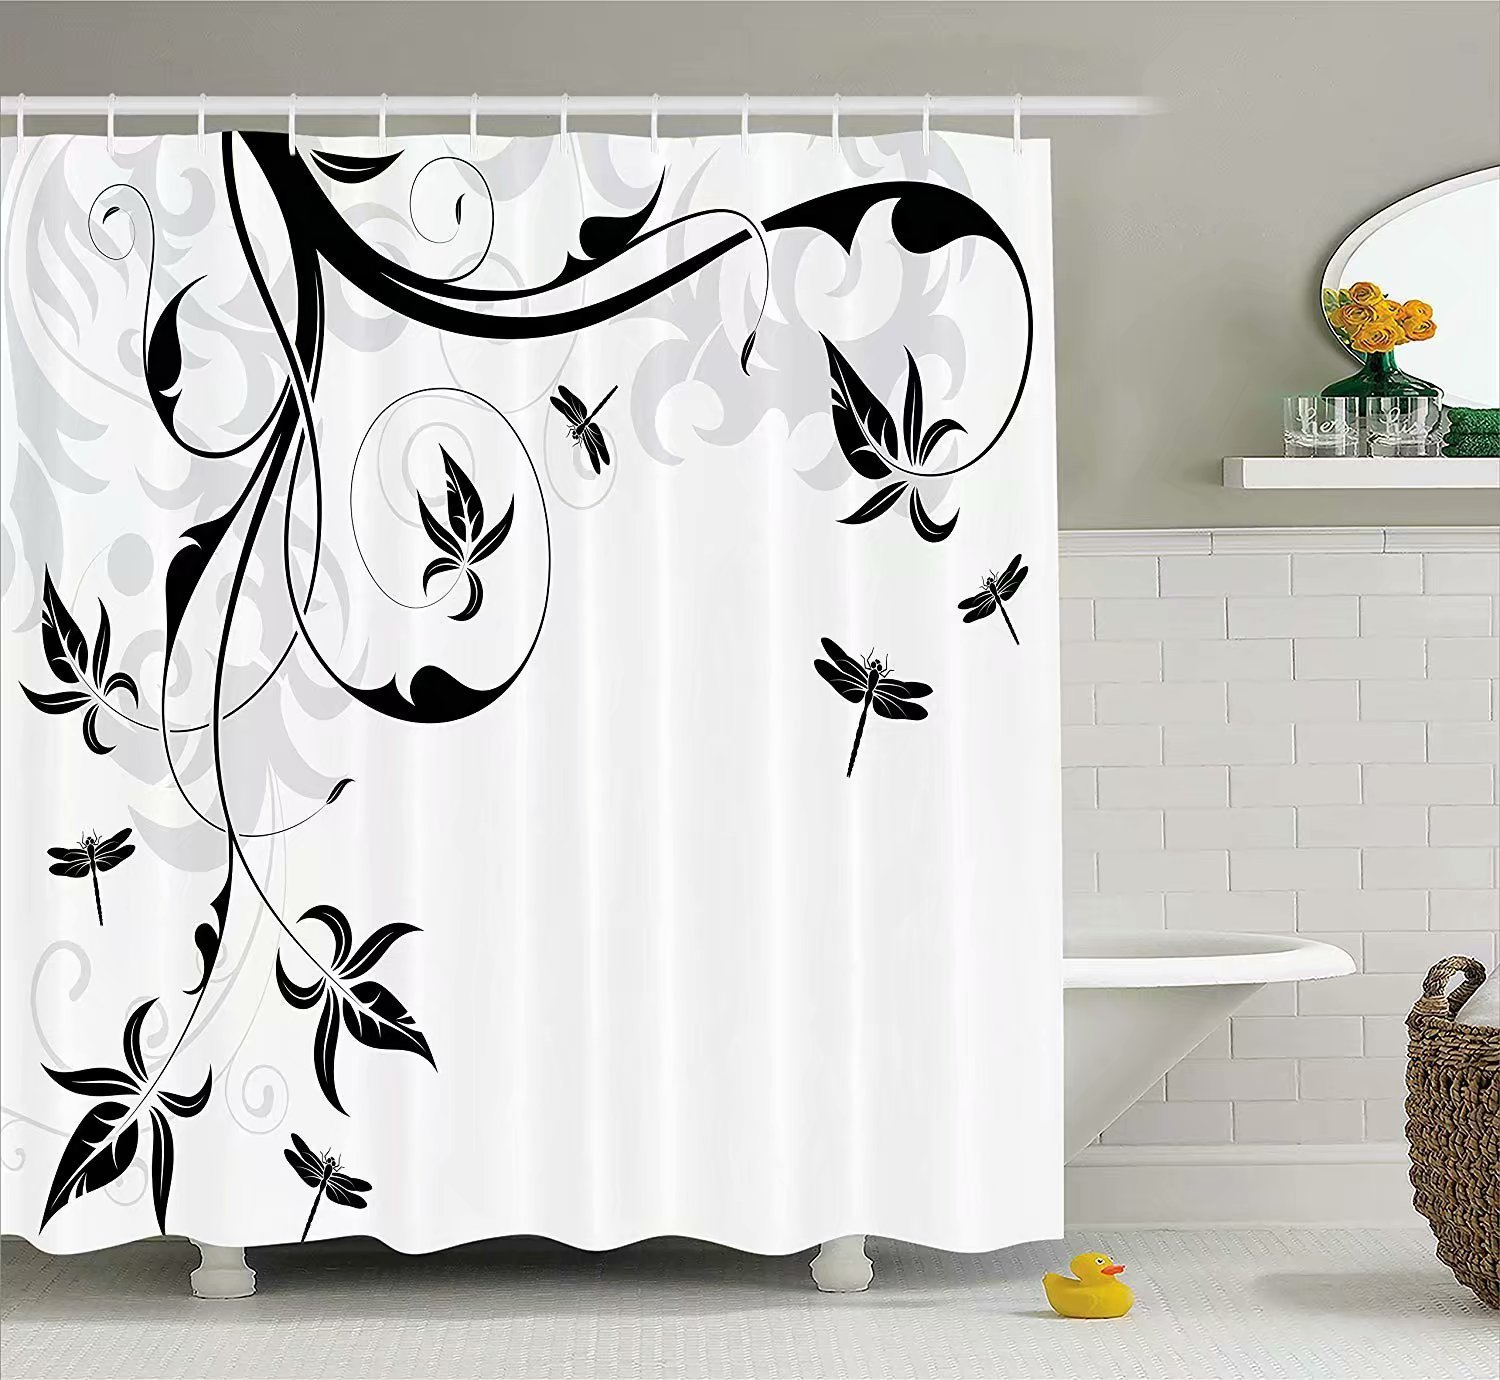 KANATSIU Swirled Floral Background Damask Curl Branches Leaves Print Shower Curtain 12 plactic Hooks,100% Made Polyester,Mildew Resistant & Machine Washable,Width x Height is 72x72